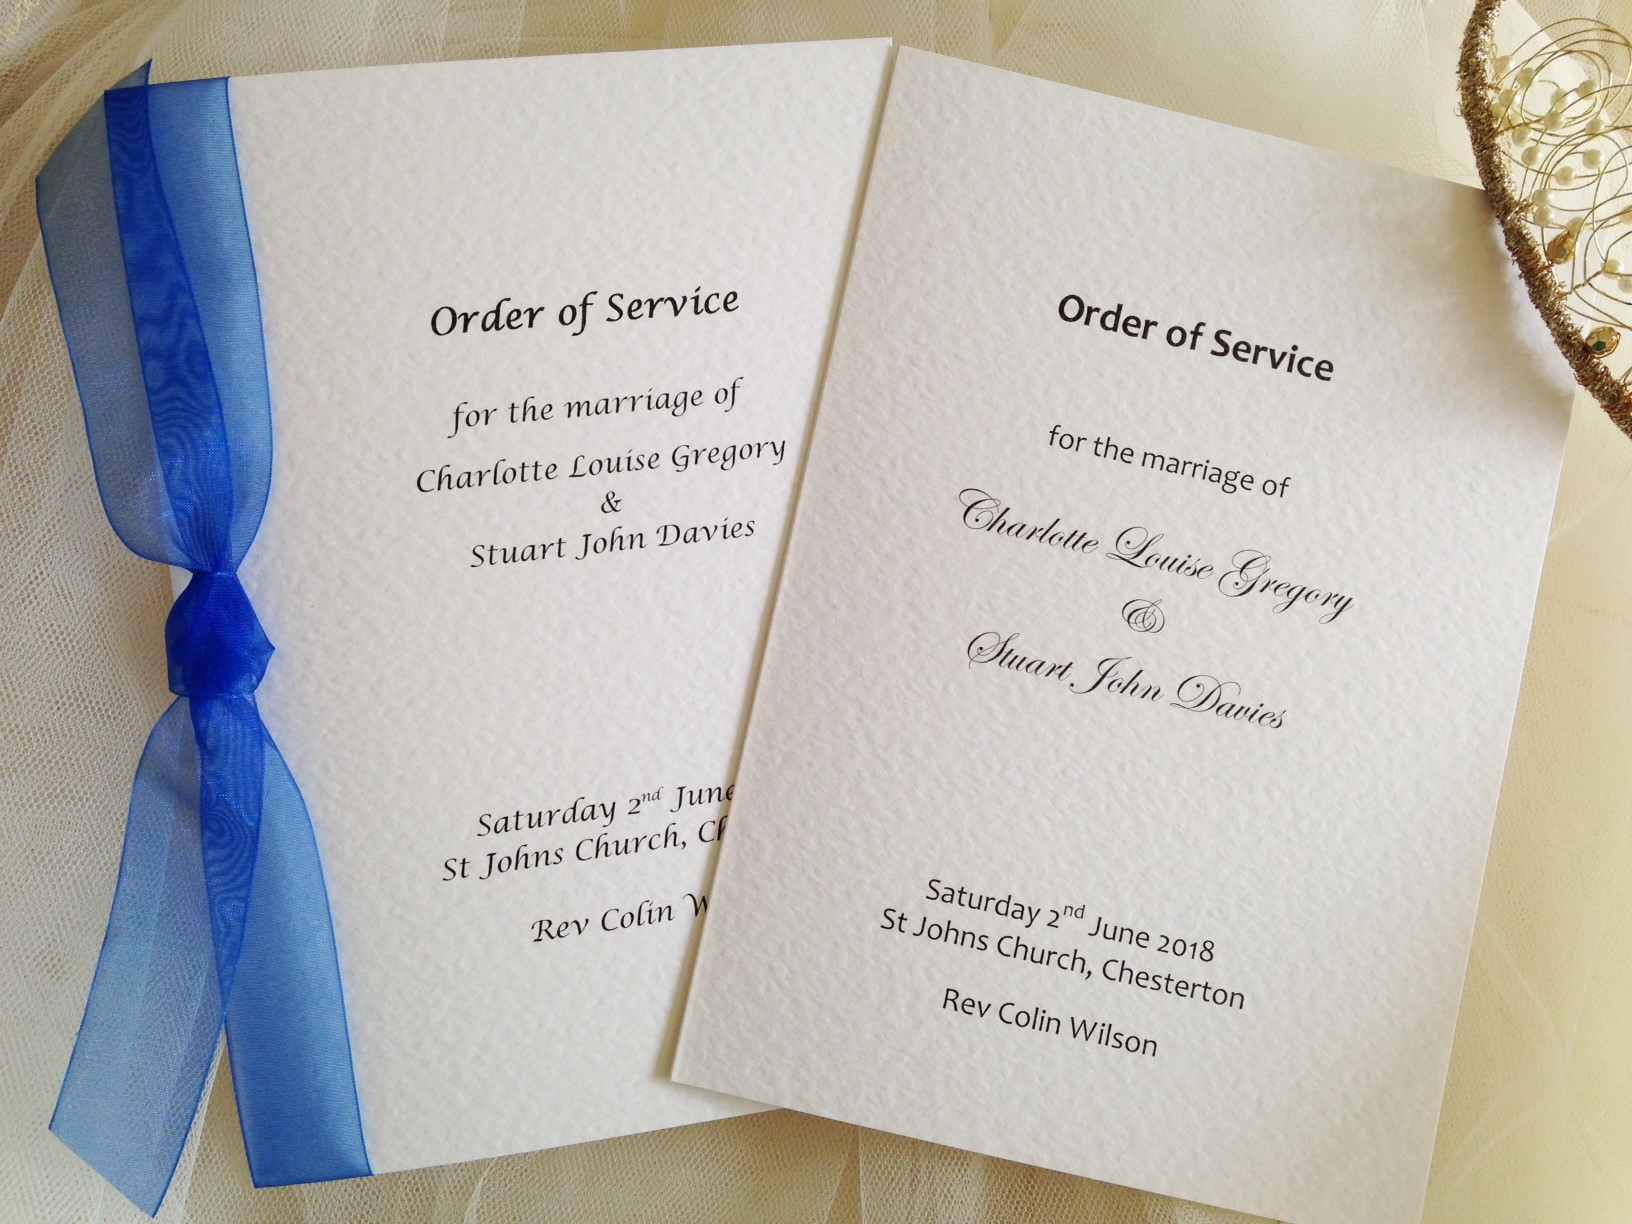 wedding blessing order of service template - order of service books for weddings wedding stationery